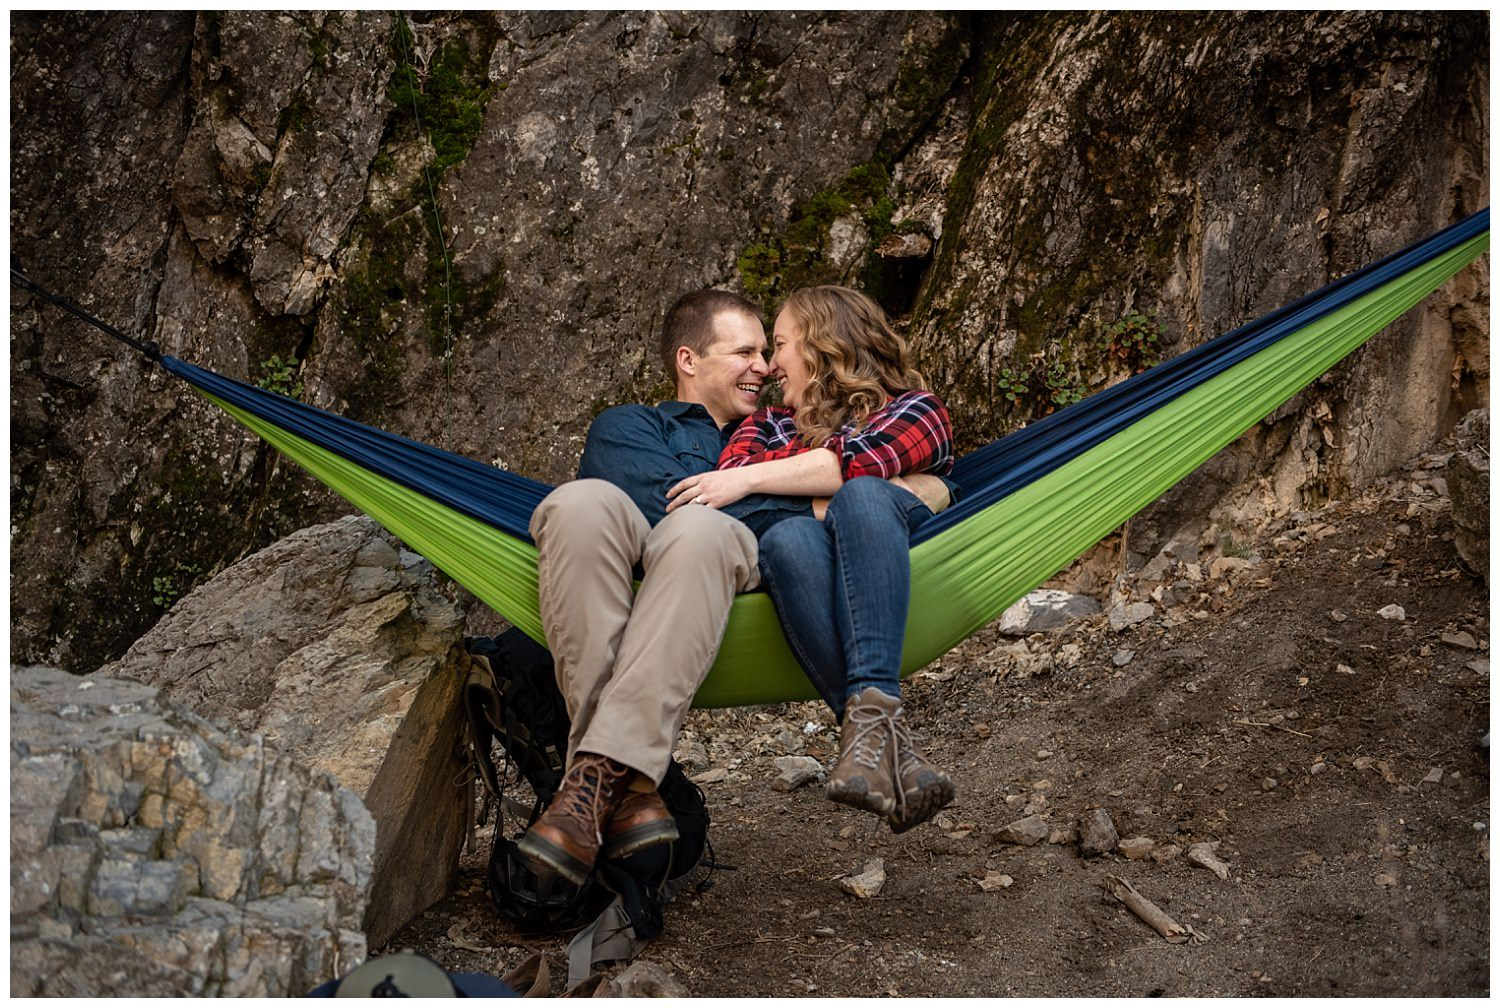 Dan Page Photography, Rock Climbing Engagement Adventure Session, Rock Canyon, Provo (22).jpg